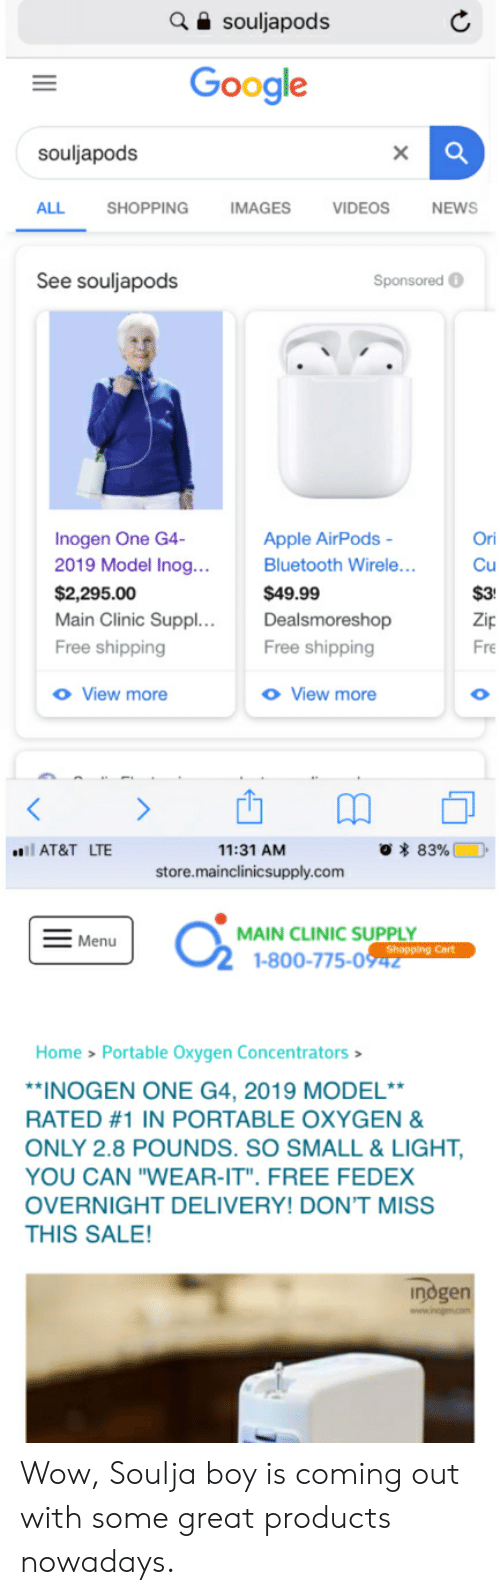 """Apple, Bluetooth, and Google: souljapods  Google  souljapods  ALL  SHOPPING  IMAGES  VIDEOS  NEWS  See souljapods  Sponsored  Inogen One G4-  2019 Model Inog...  Ori  Apple AirPods  Bluetooth Wirele...  Cu  $2,295.00  Main Clinic Suppl. ..  $49.99  $3  Dealsmoreshop  Zip  Free shipping  Free shipping  Fre  o View more  o View more  O  O 83%  l AT&T LTE  11:31 AM  store.mainclinicsupply.com  MAIN CLINIC SUPPLY  Shopping Cart  1-800-775-0942  Menu  Home > Portable Oxygen Concentrators  *INOGEN ONE G4, 2019 MODEL**  RATED #1 IN PORTABLE OXYGEN &  ONLY 2.8 POUNDS. SO SMALL & LIGHT,  YOU CAN """"WEAR-IT"""". FREE FEDEX  OVERNIGHT DELIVERY! DON'T MISS  THIS SALE!  indgen Wow, Soulja boy is coming out with some great products nowadays."""